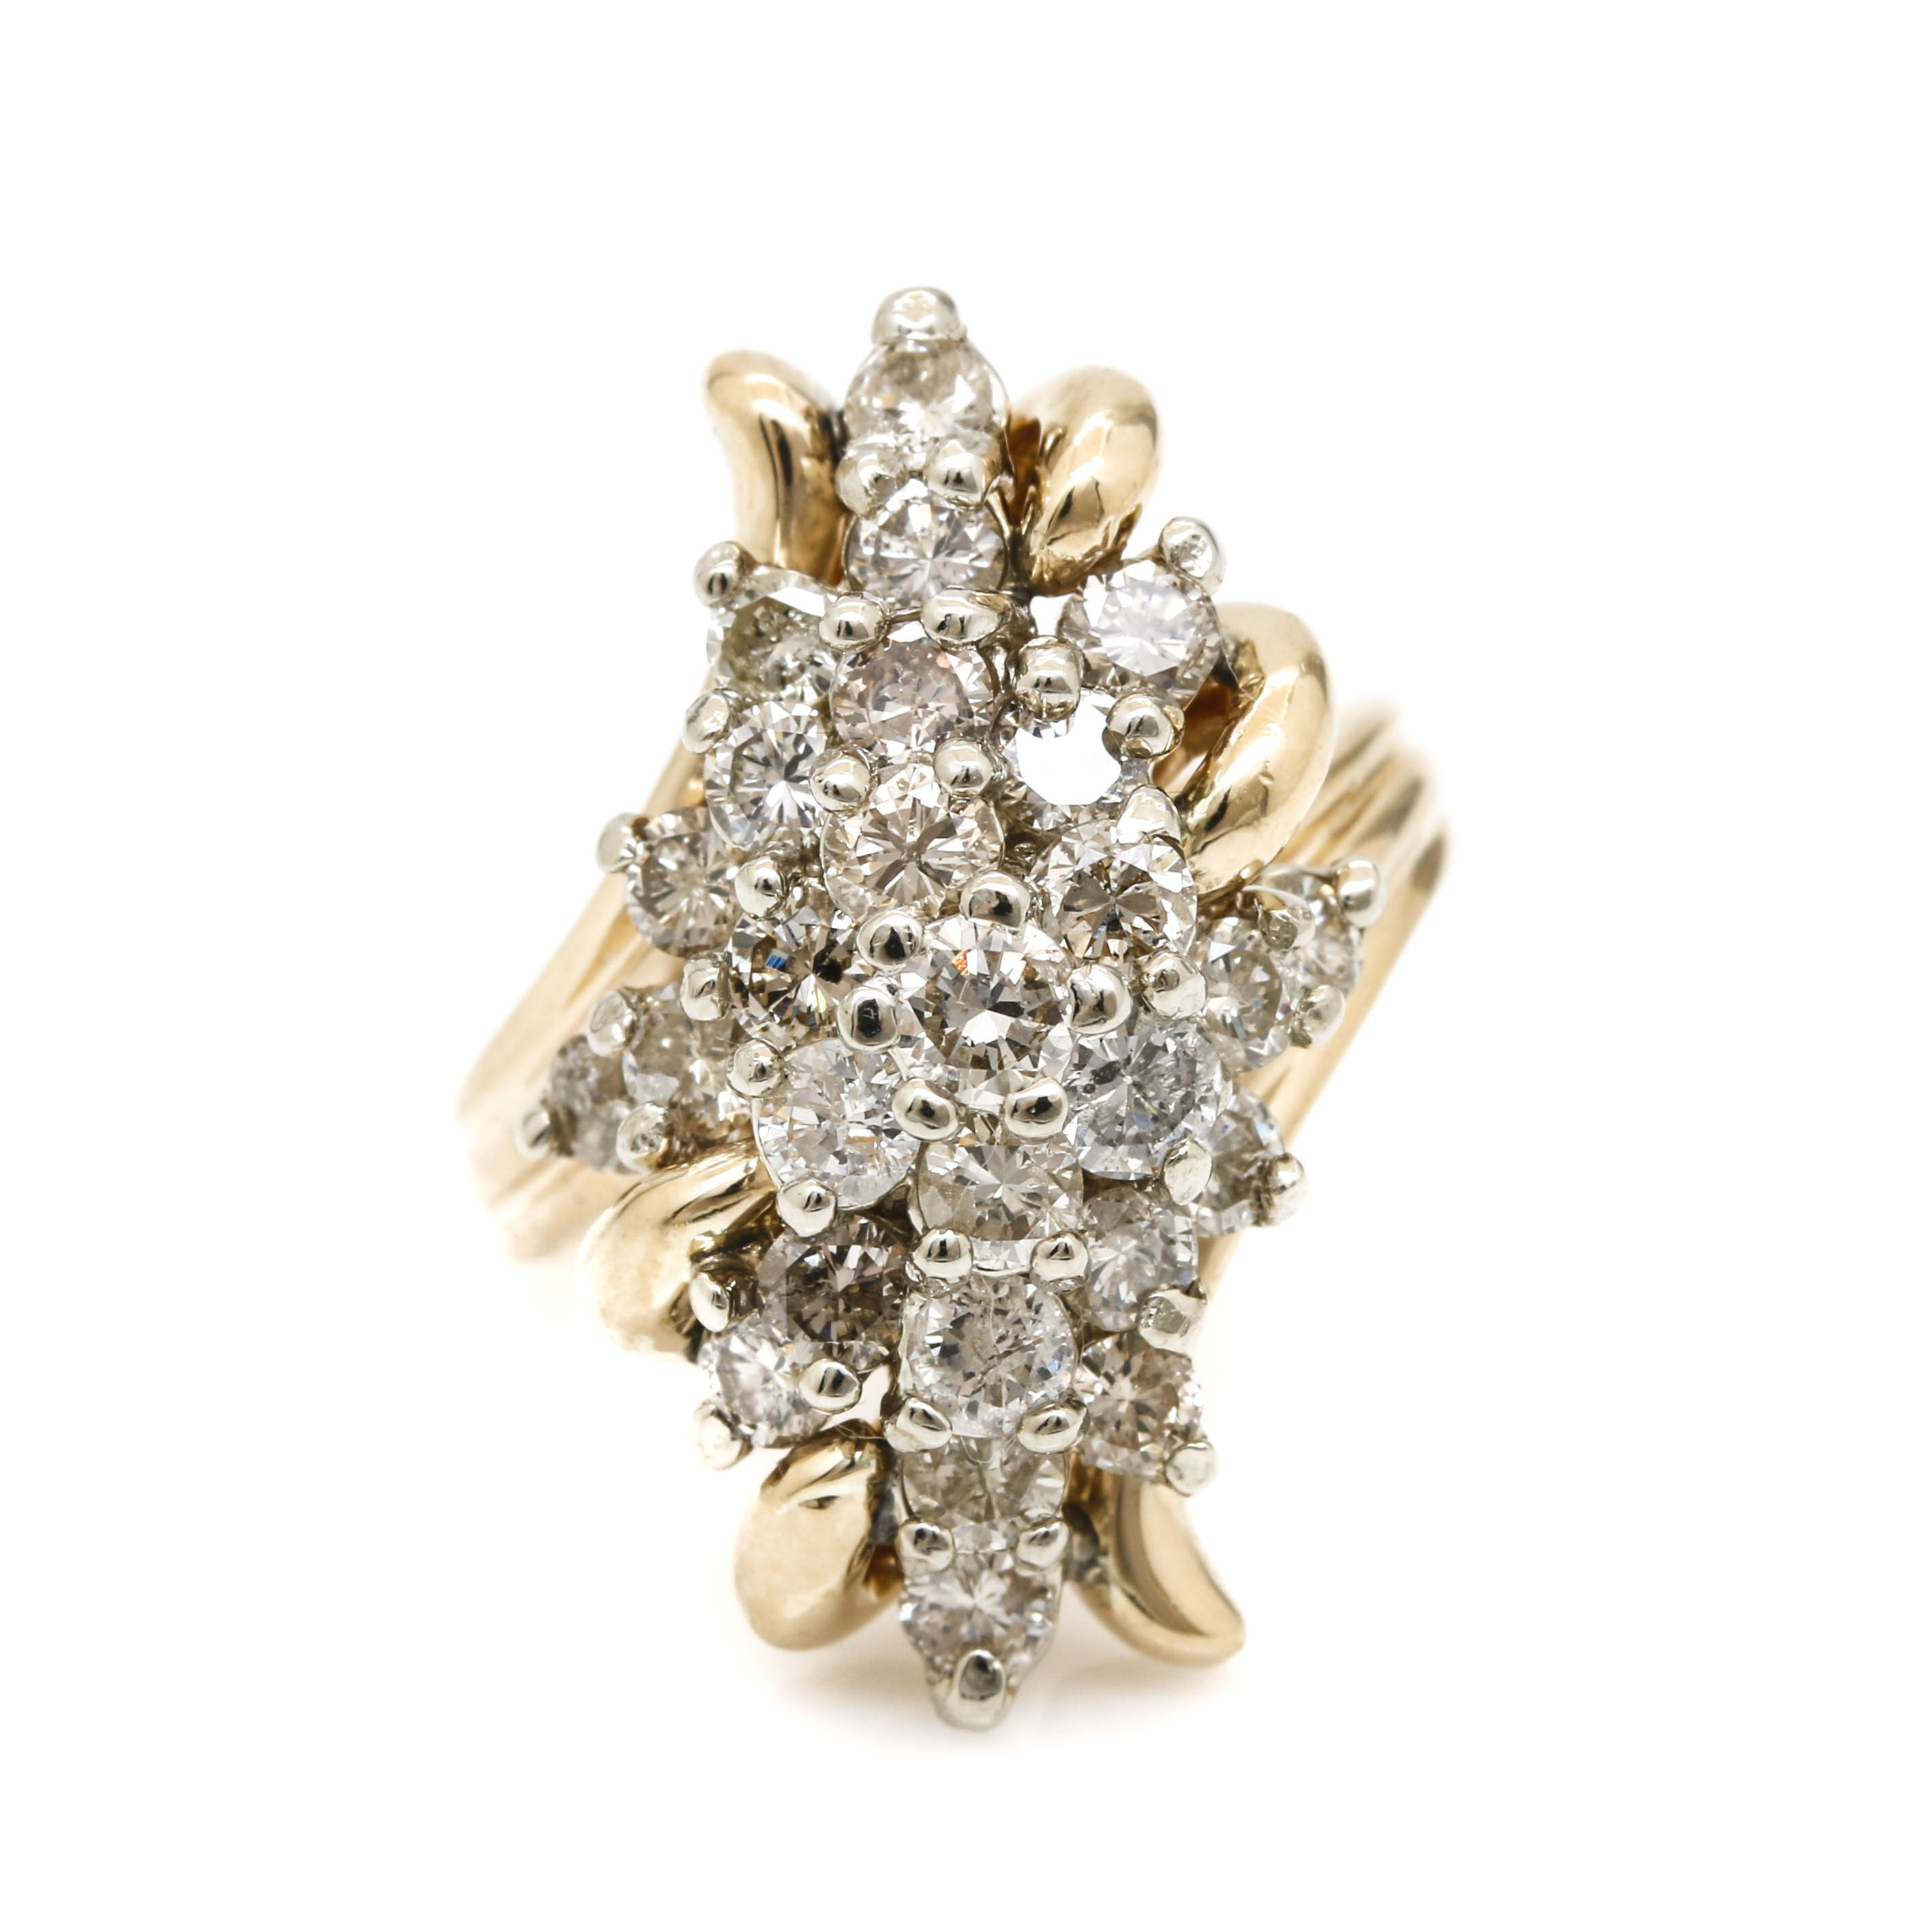 14K Yellow Gold 3.00 CTW Diamond Cluster Ring